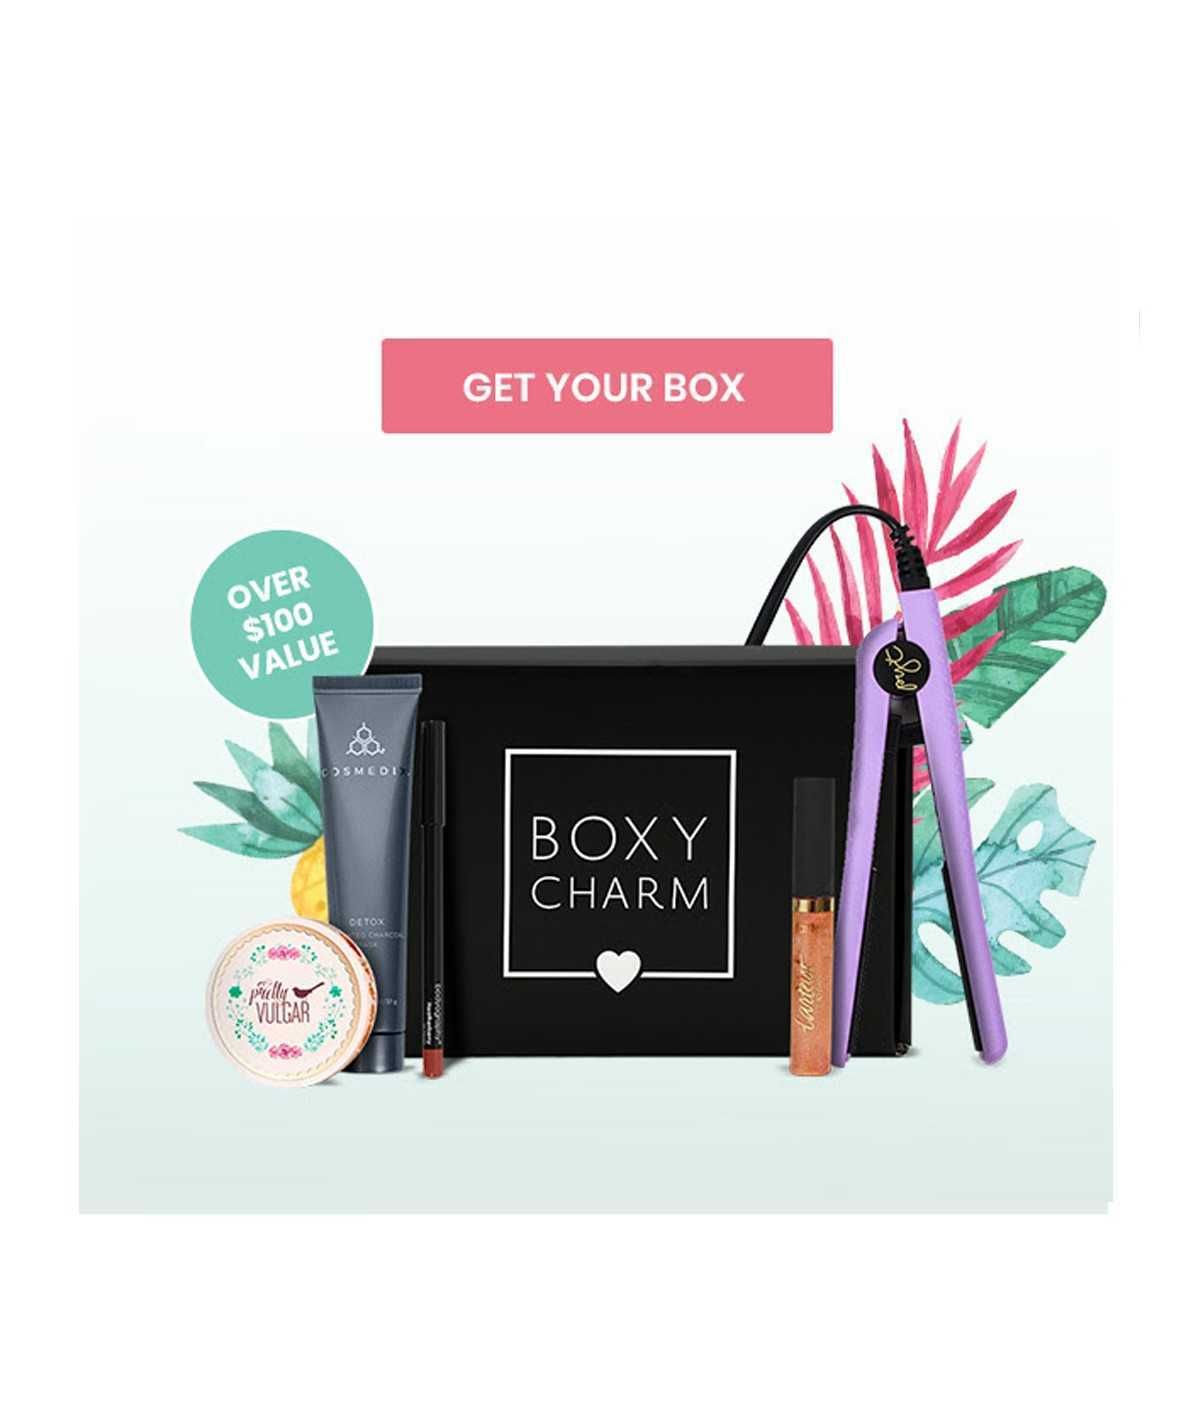 Boxycharm December Box